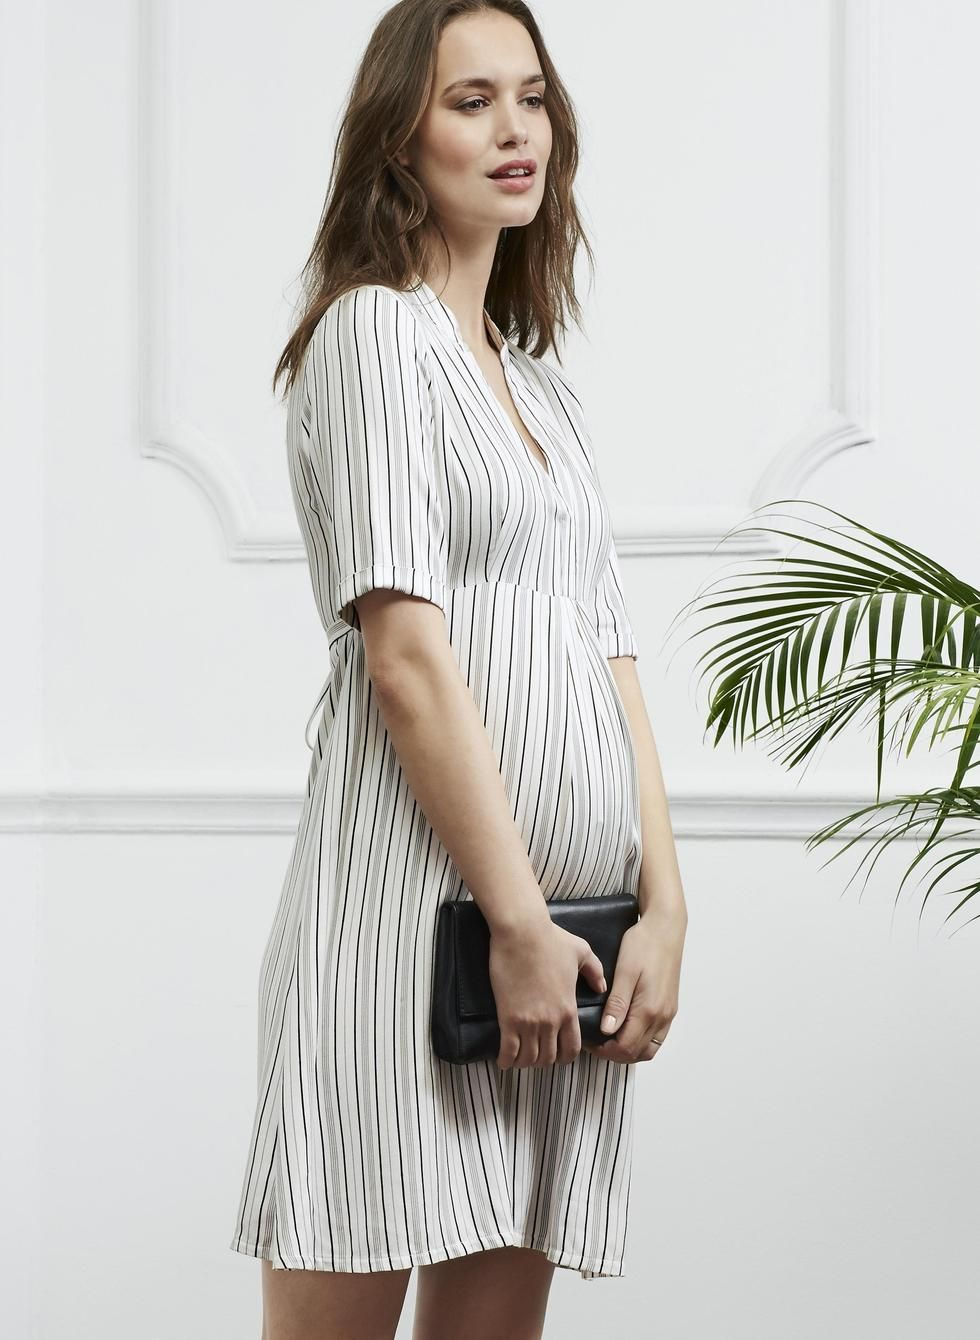 Isabella oliver burnell striped maternity dress splendid style isabella oliver burnell striped maternity dress ombrellifo Image collections